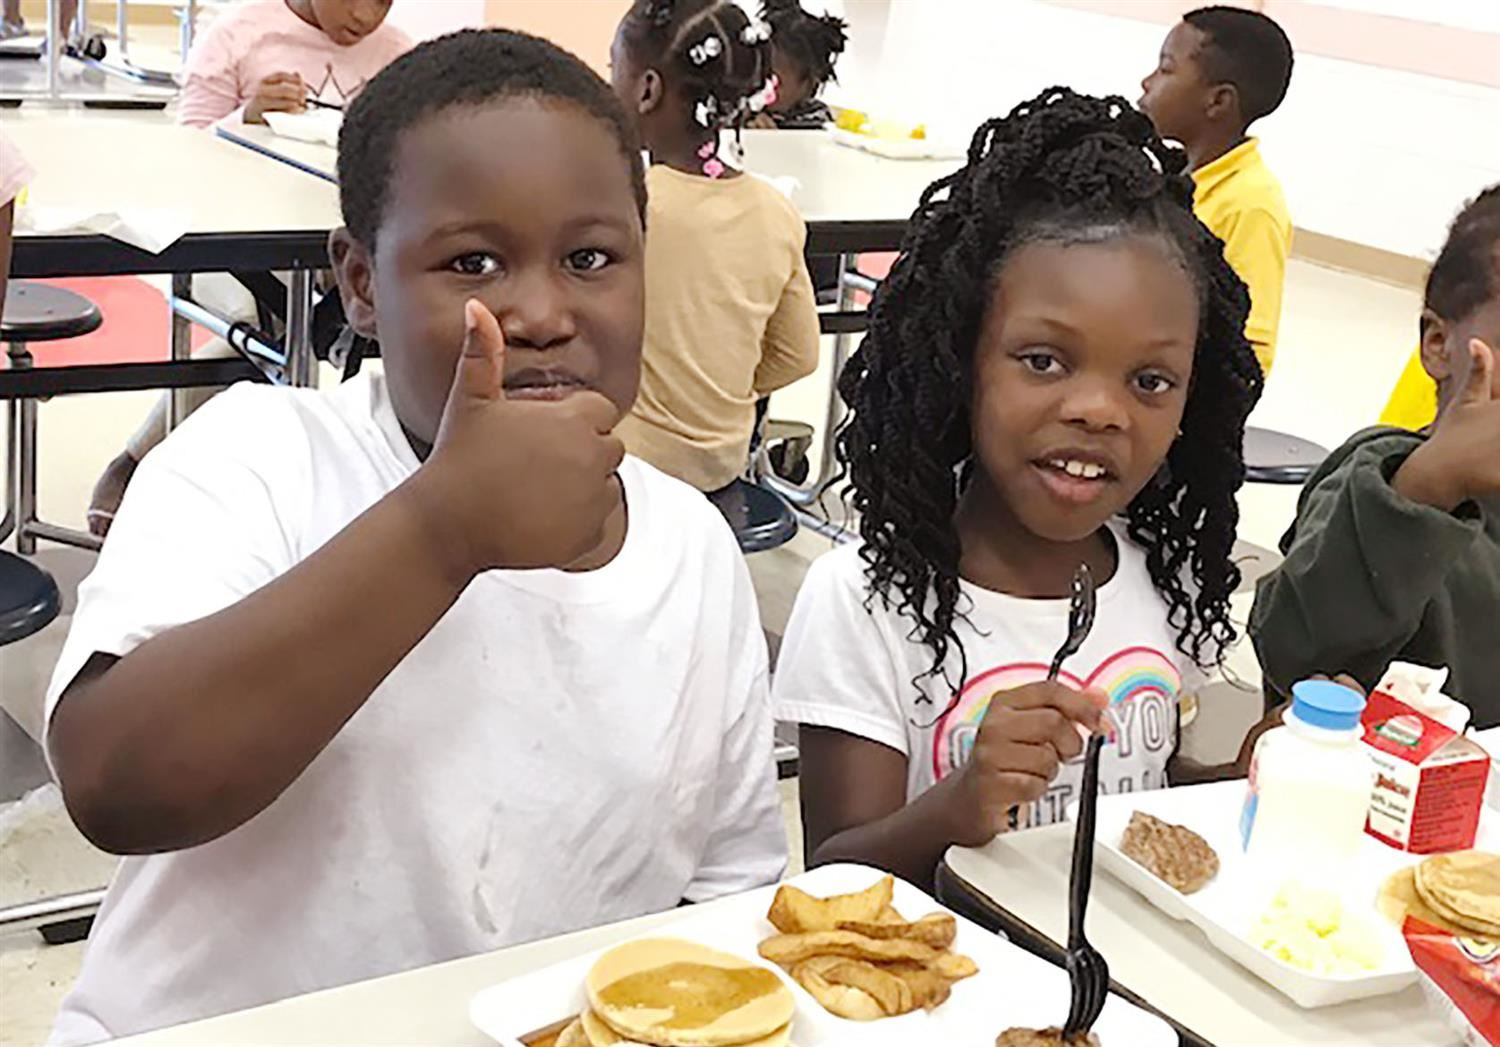 Elementary student gives a thumbs up while eating breakfast.